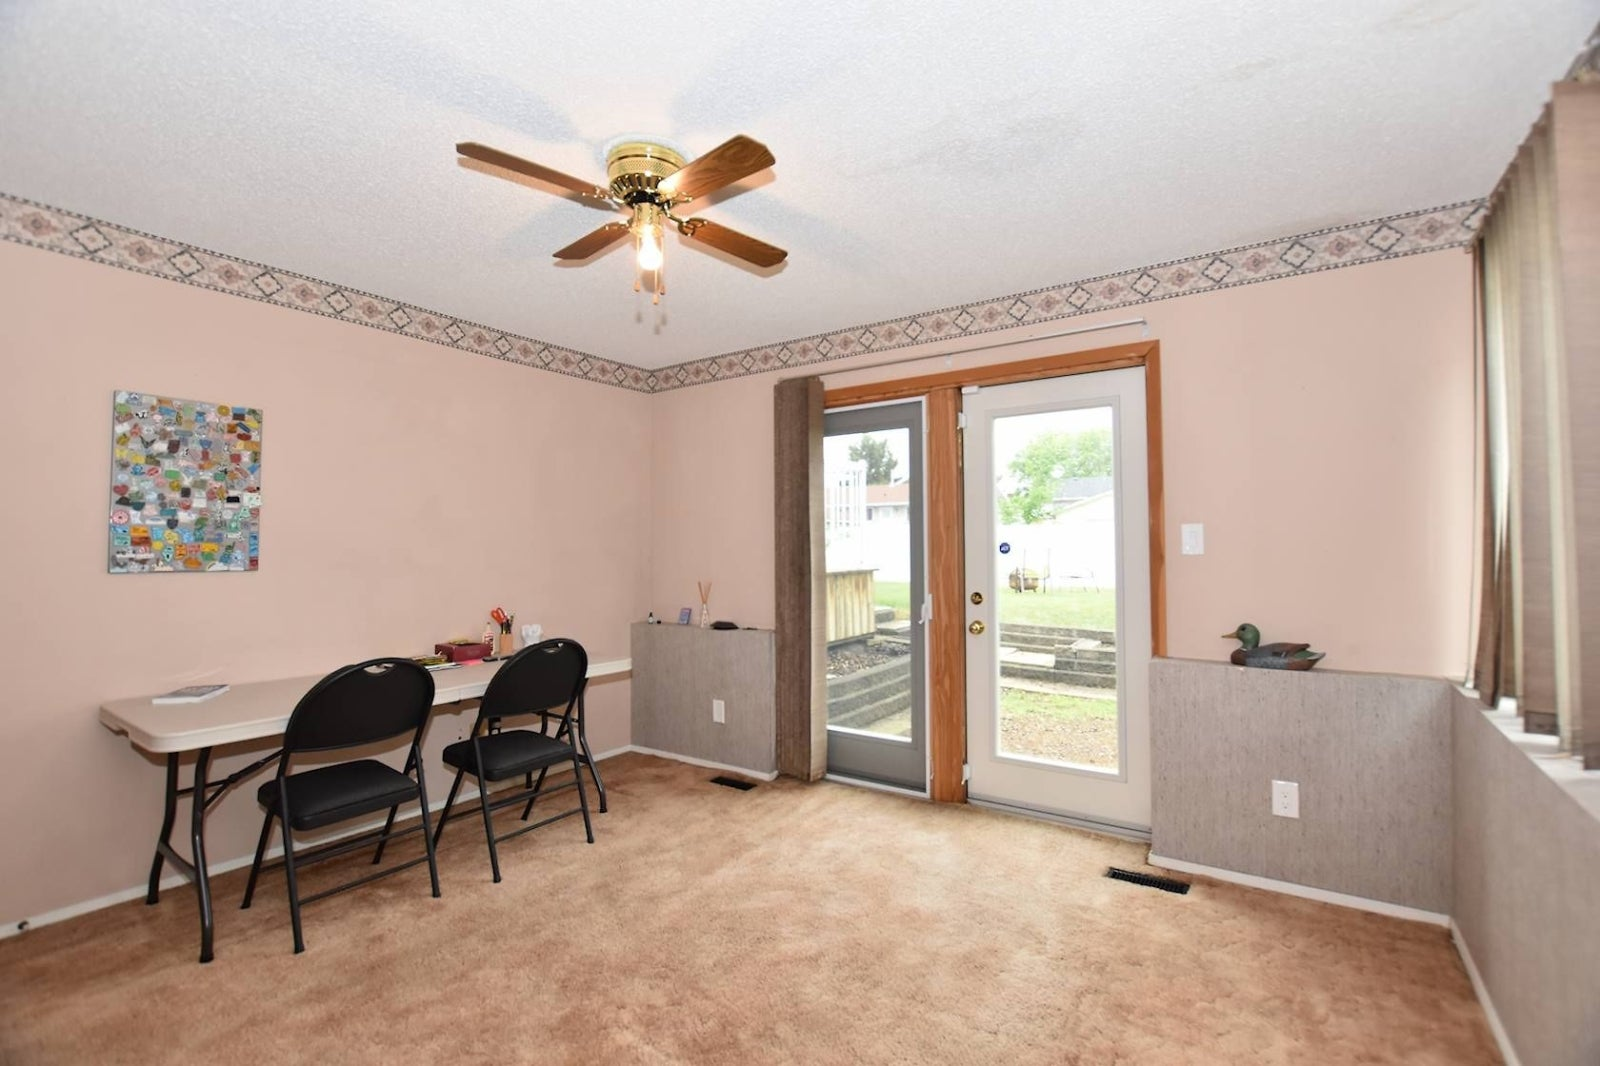 11528 141 Ave. NW - Carlisle Detached Single Family for sale, 3 Bedrooms (E4160650) #7